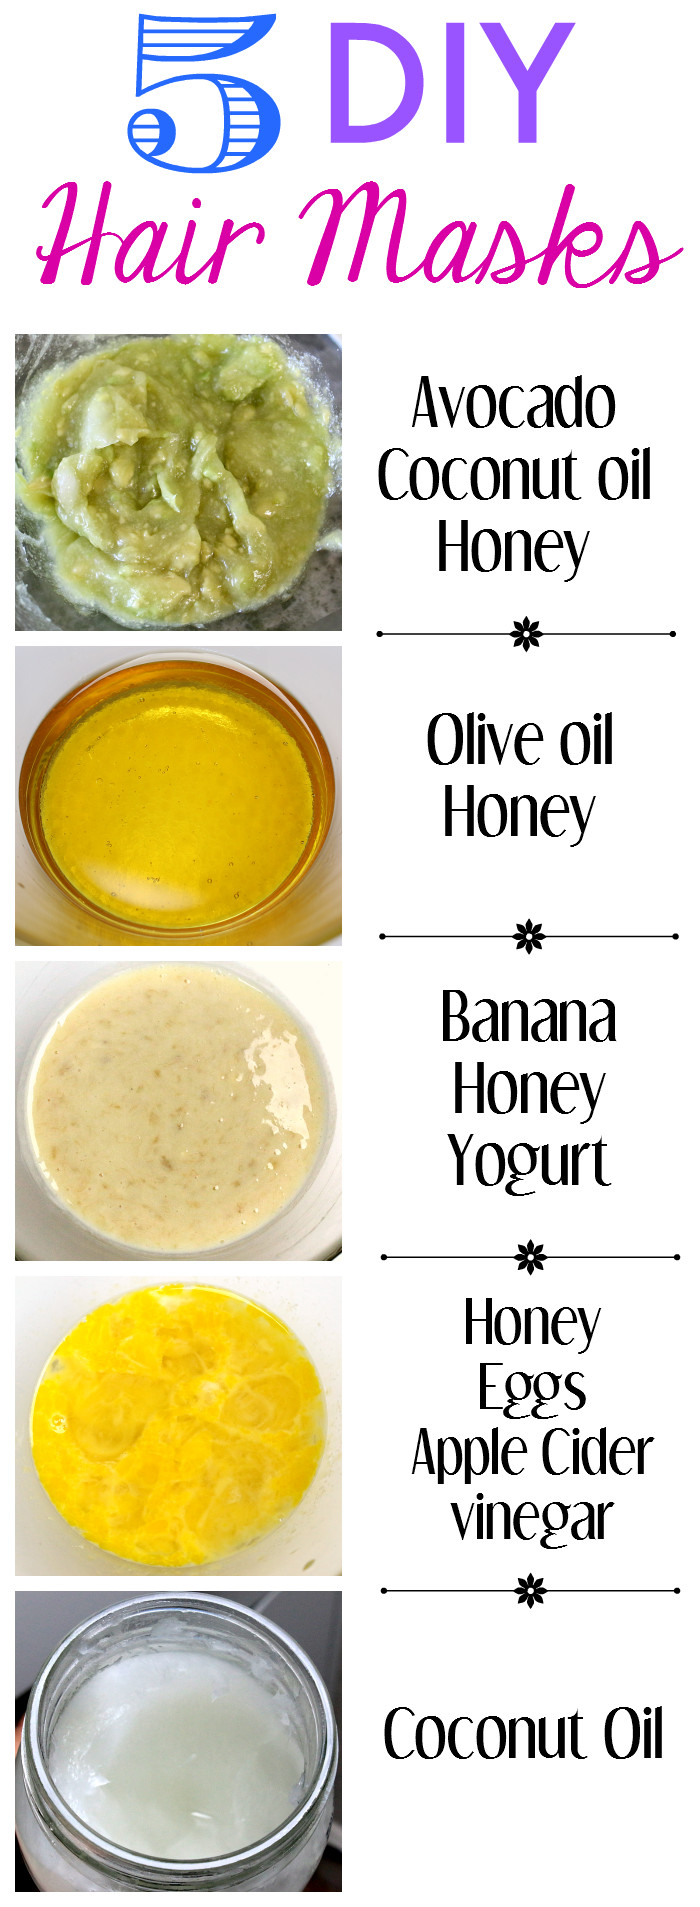 Best ideas about DIY Hair Mask . Save or Pin 5 DIY Hair Masks You Can Make at Home Now.